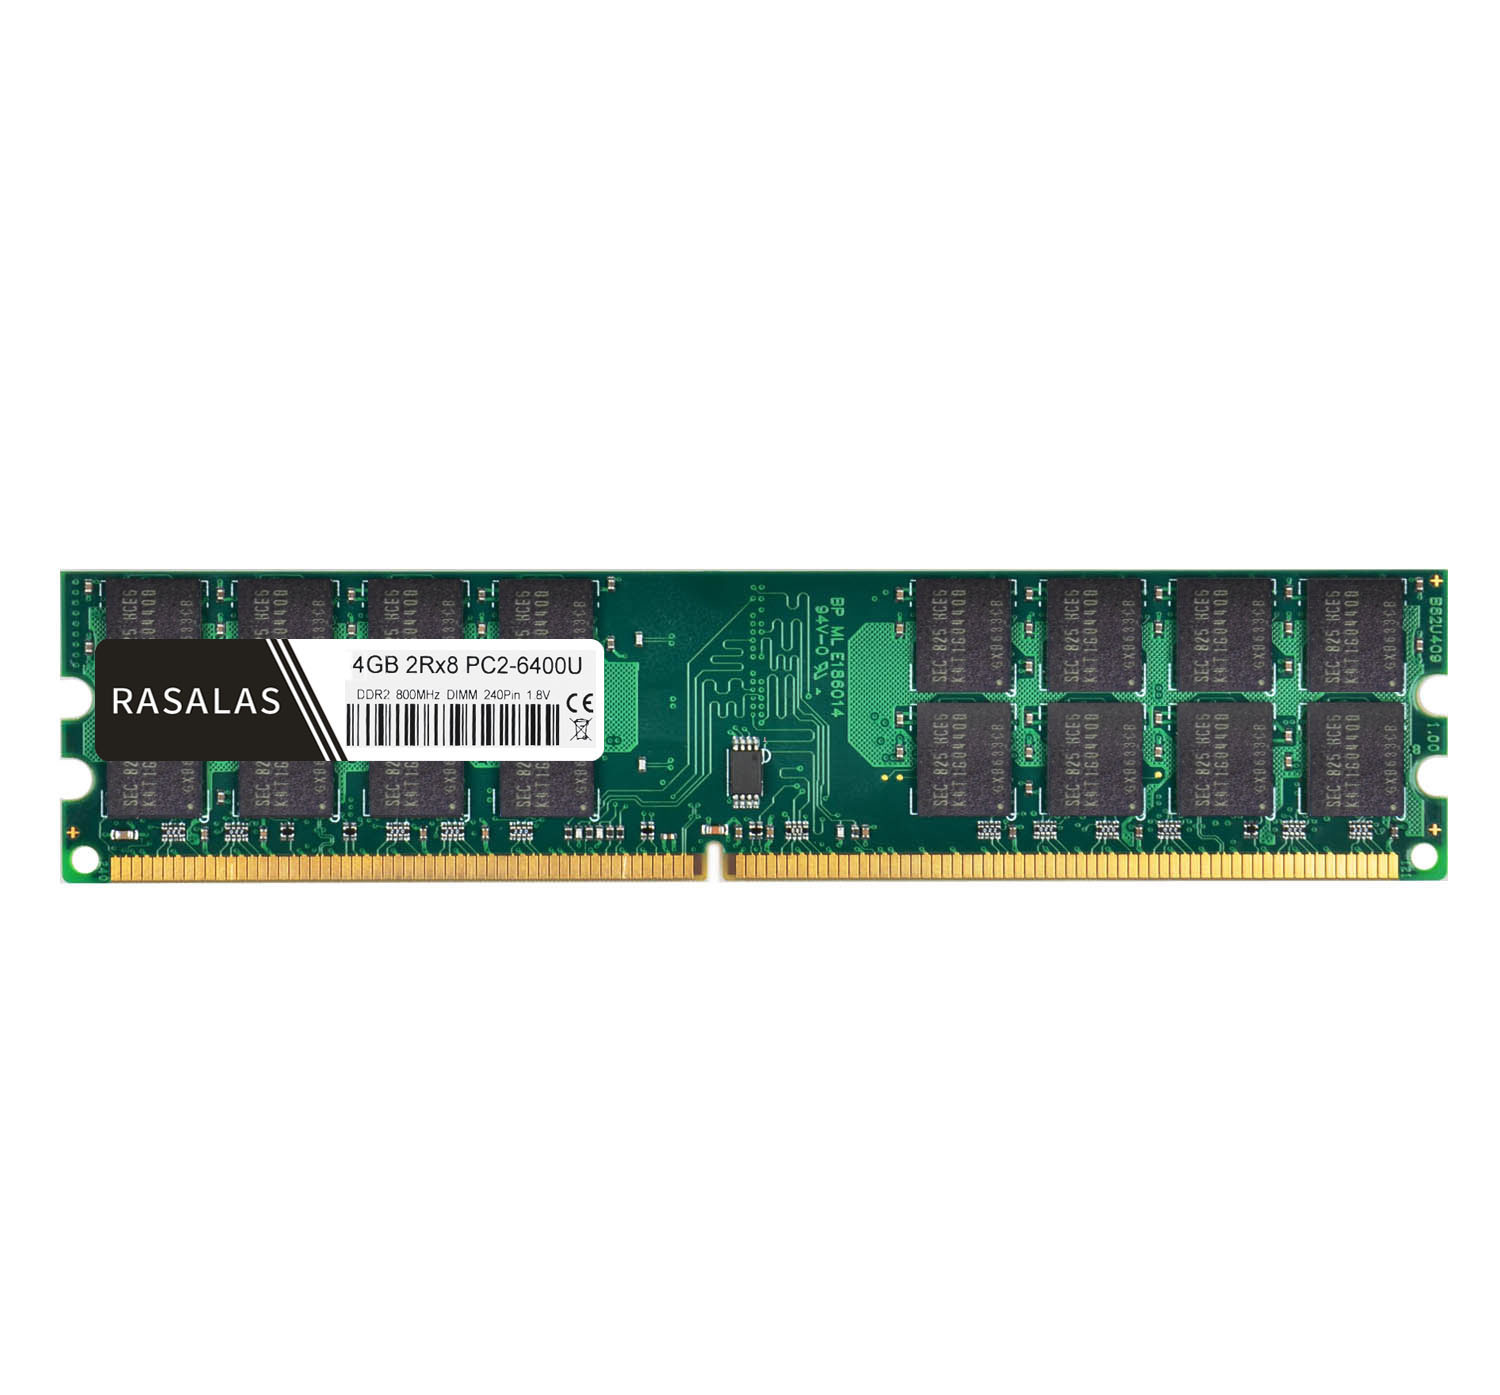 Rasalas <font><b>4GB</b></font> 2Rx8 <font><b>DDR2</b></font> 667Mhz 800Mhz PC2-5300U PC2-6400U DIMM 1,8 V Desktop PC RAM 240Pin Memory Only For AMD CPU image